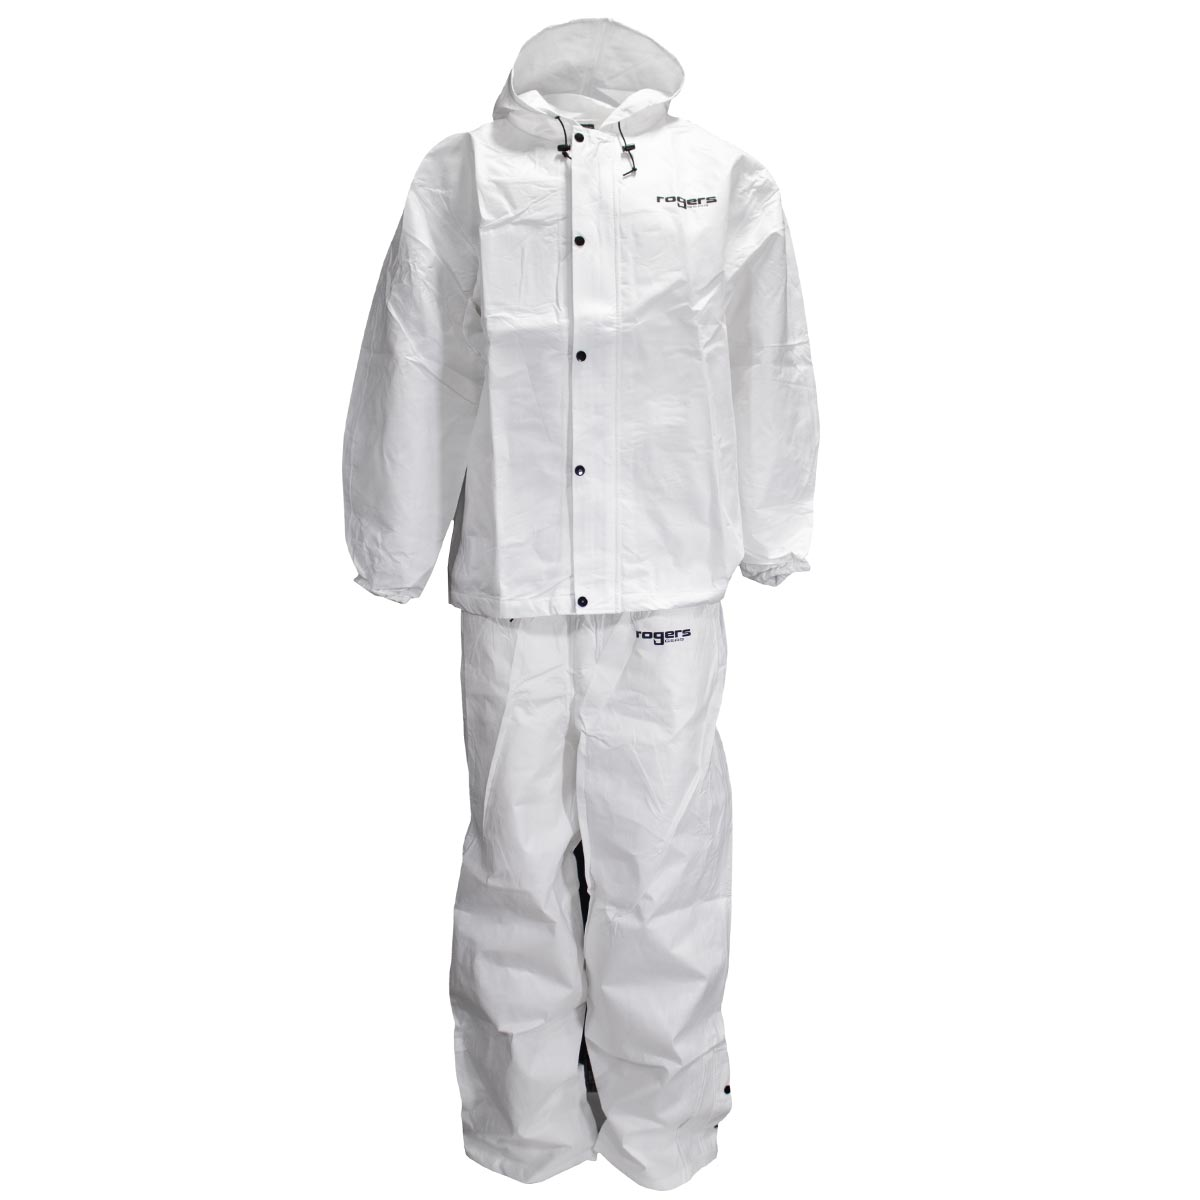 Rogers Workin' Man Snow Goose Suit - White_1.jpg